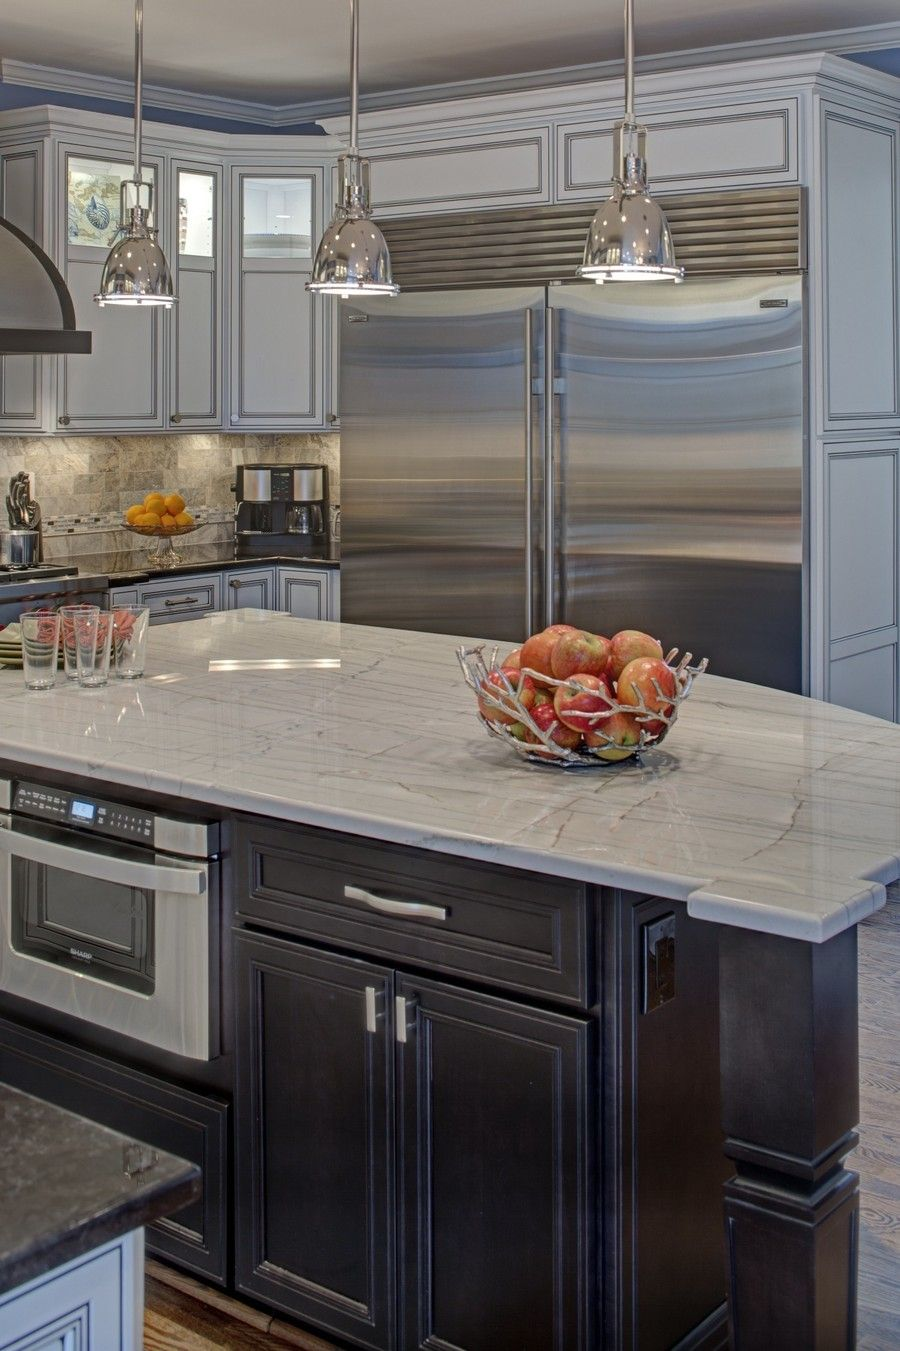 builder grade kitchen converted into top of the line on awesome modern kitchen design ideas id=99259